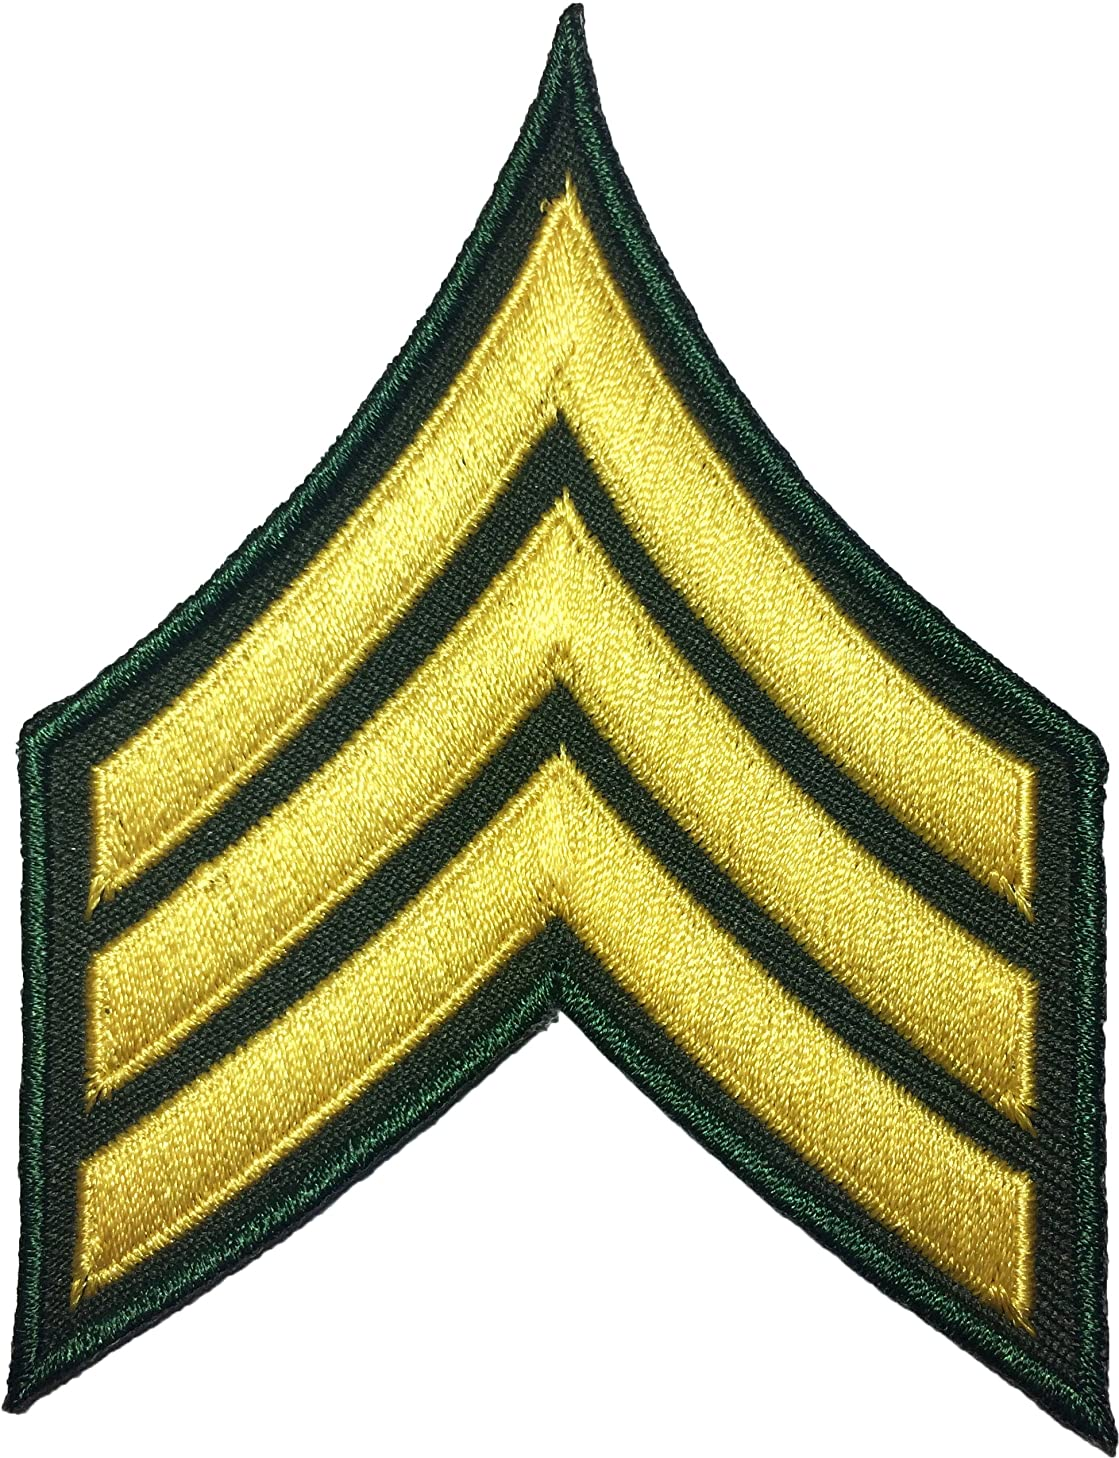 Papapatch Chevrons Sergeant E-5 Stripes US Army Rank Sew on Iron on Arms Shoulder Embroidered Applique Patch - Gold on Green (IRON-E5-OD-NBOR)